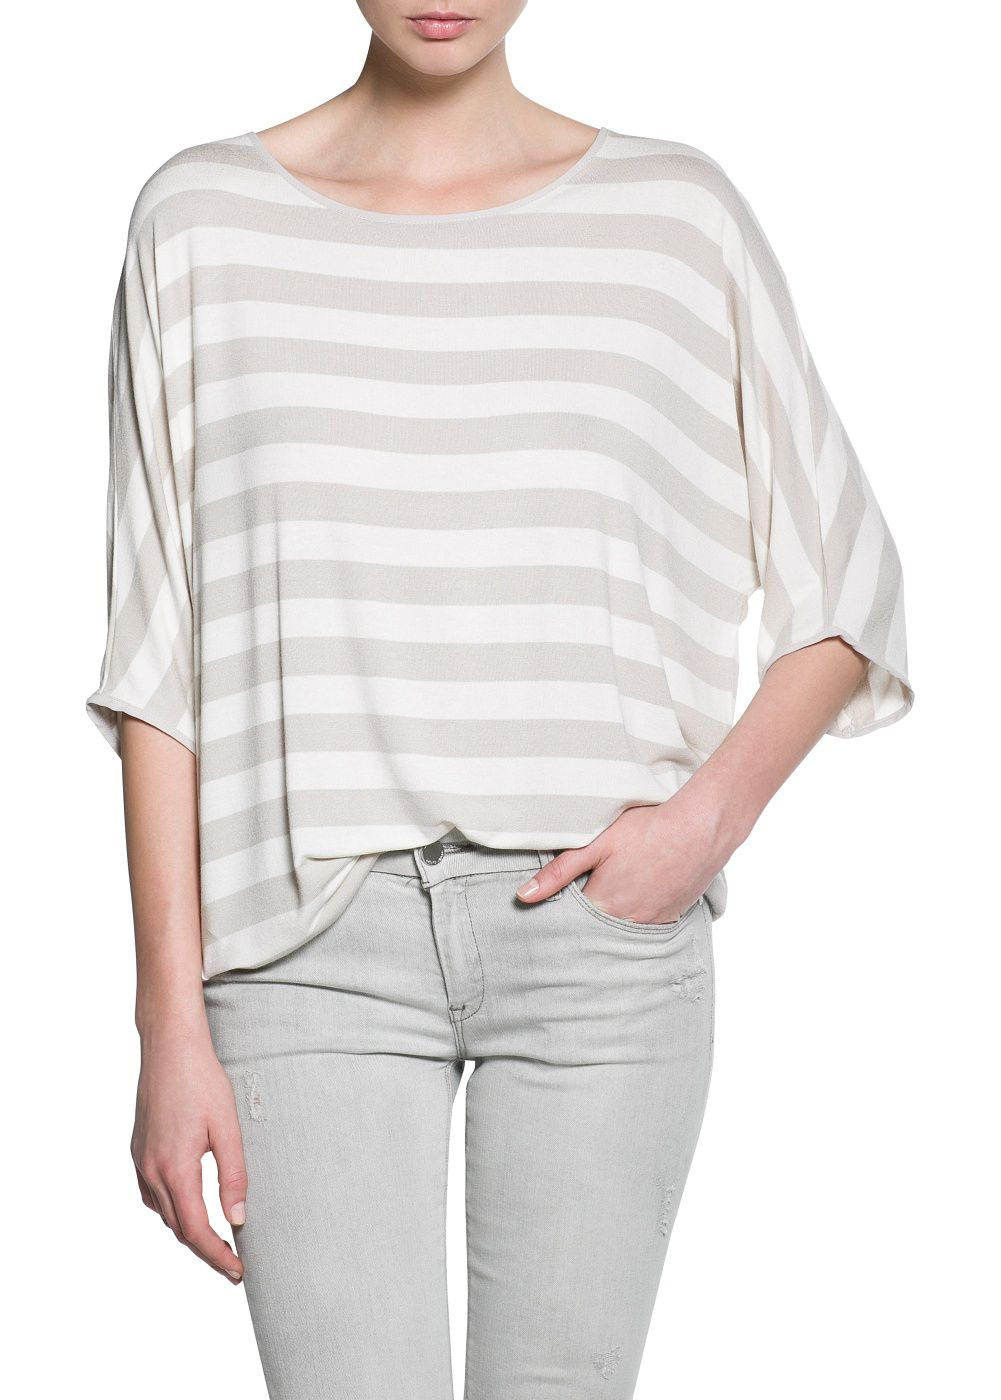 Striped monochrome t-shirt